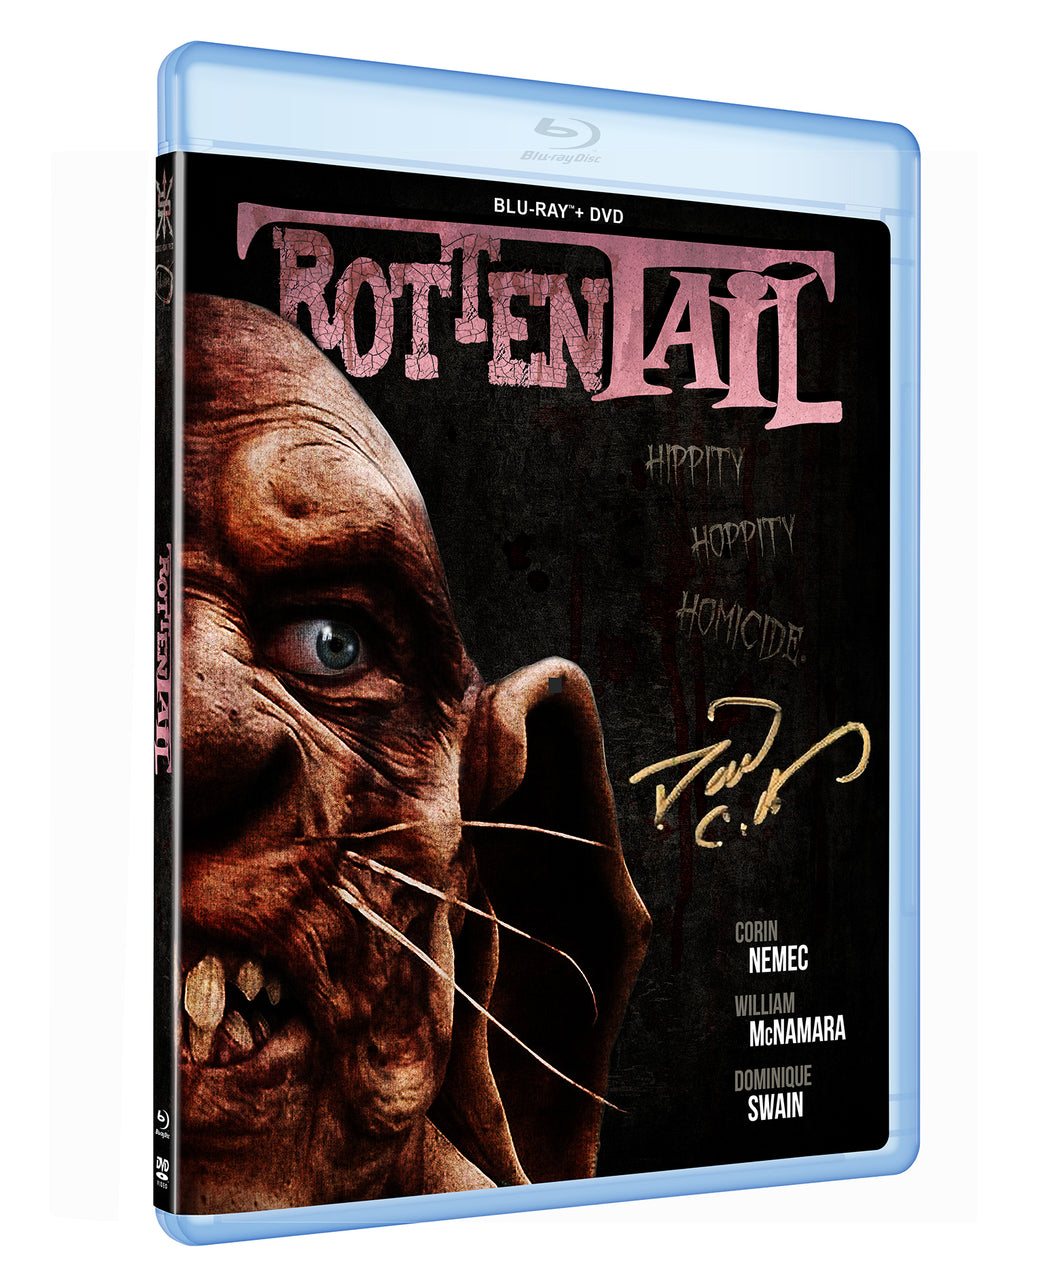 Rottentail (Blu-Ray + DVD Combo Pack) - Lim. Ed. Source Point Exclusive